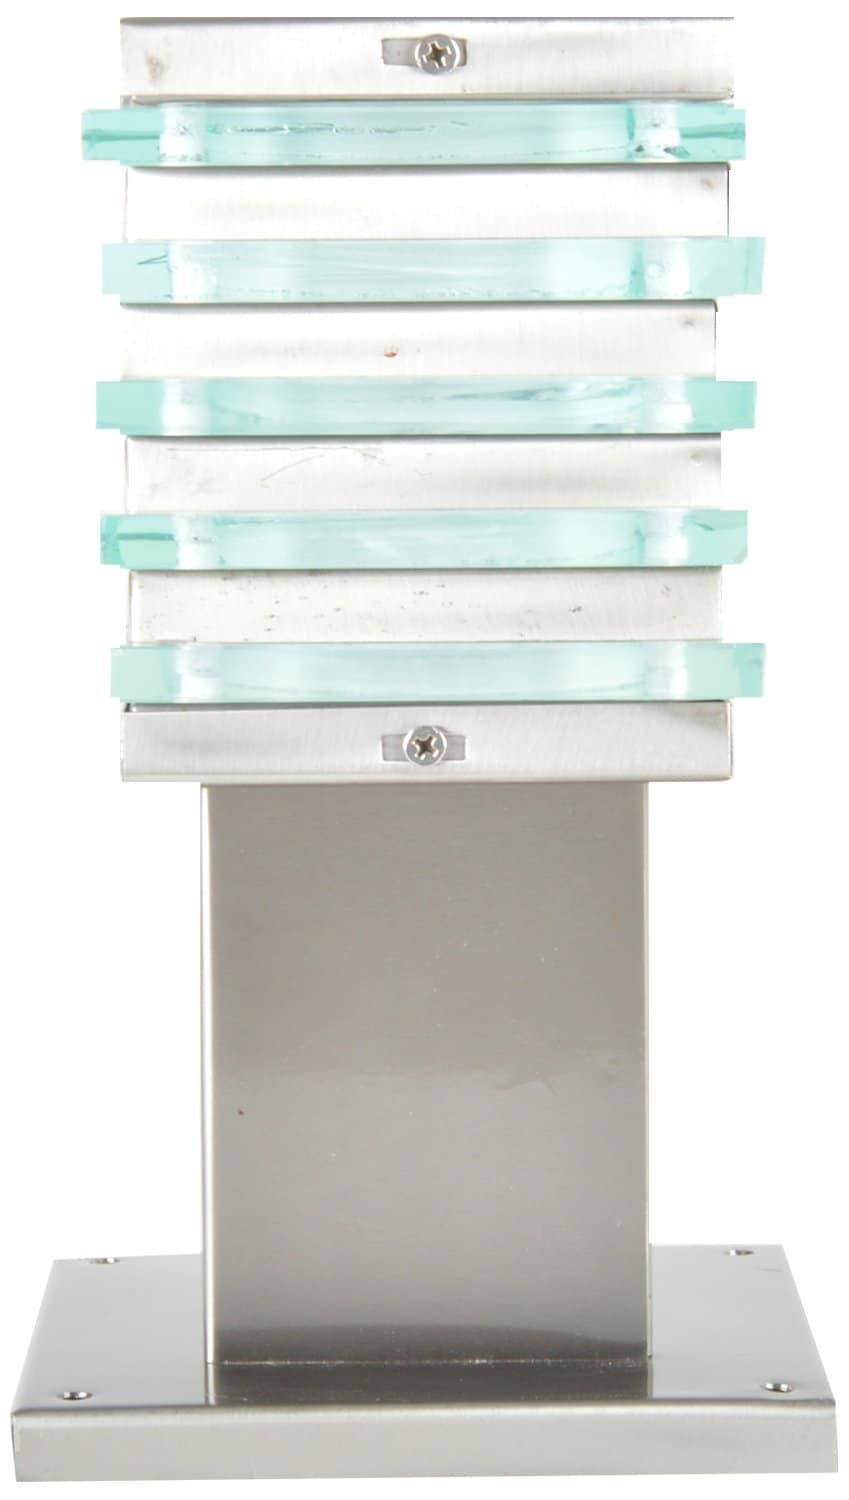 Glow Fixtures Garden Gate Light Fixture Ice Square Stainless Steel 4 -- Product Code: GL612ABD-REG